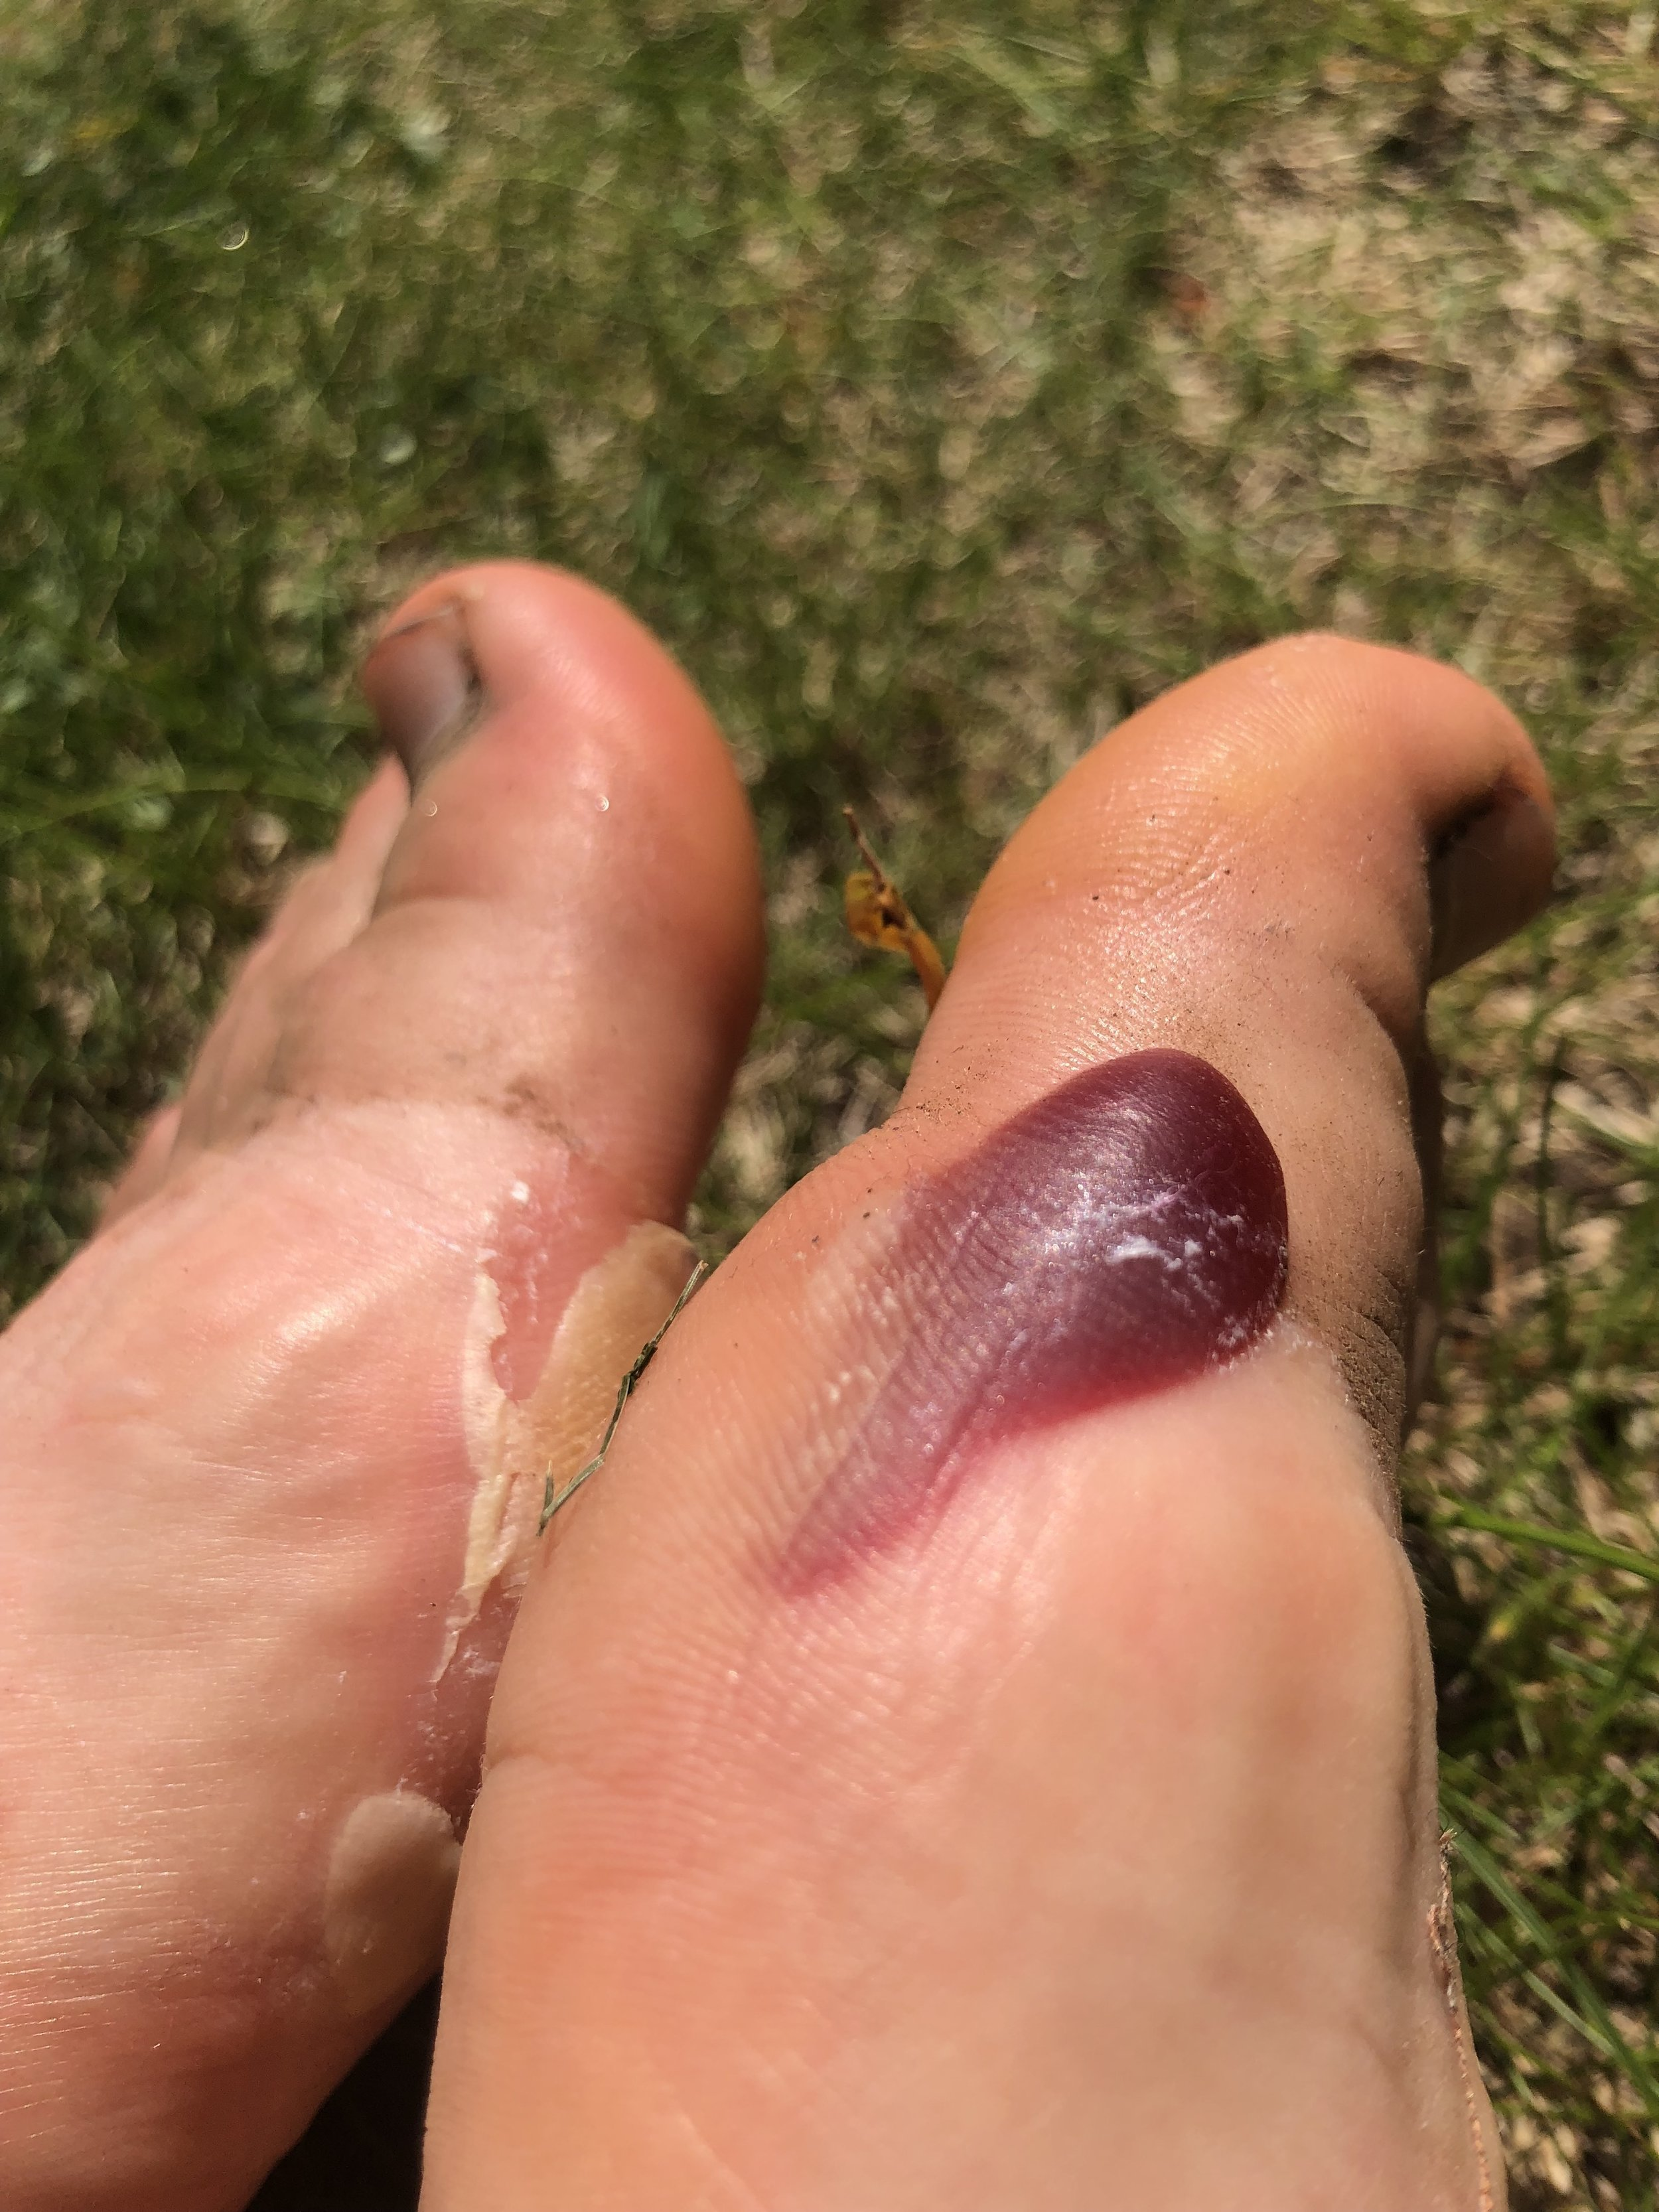 I feel like it's a testament to how shitty my day was, that I didn't even register the fact I was growing giant blood blisters until after I took my shoes off at the finish line. Quite proud of this one, actually. That colour…